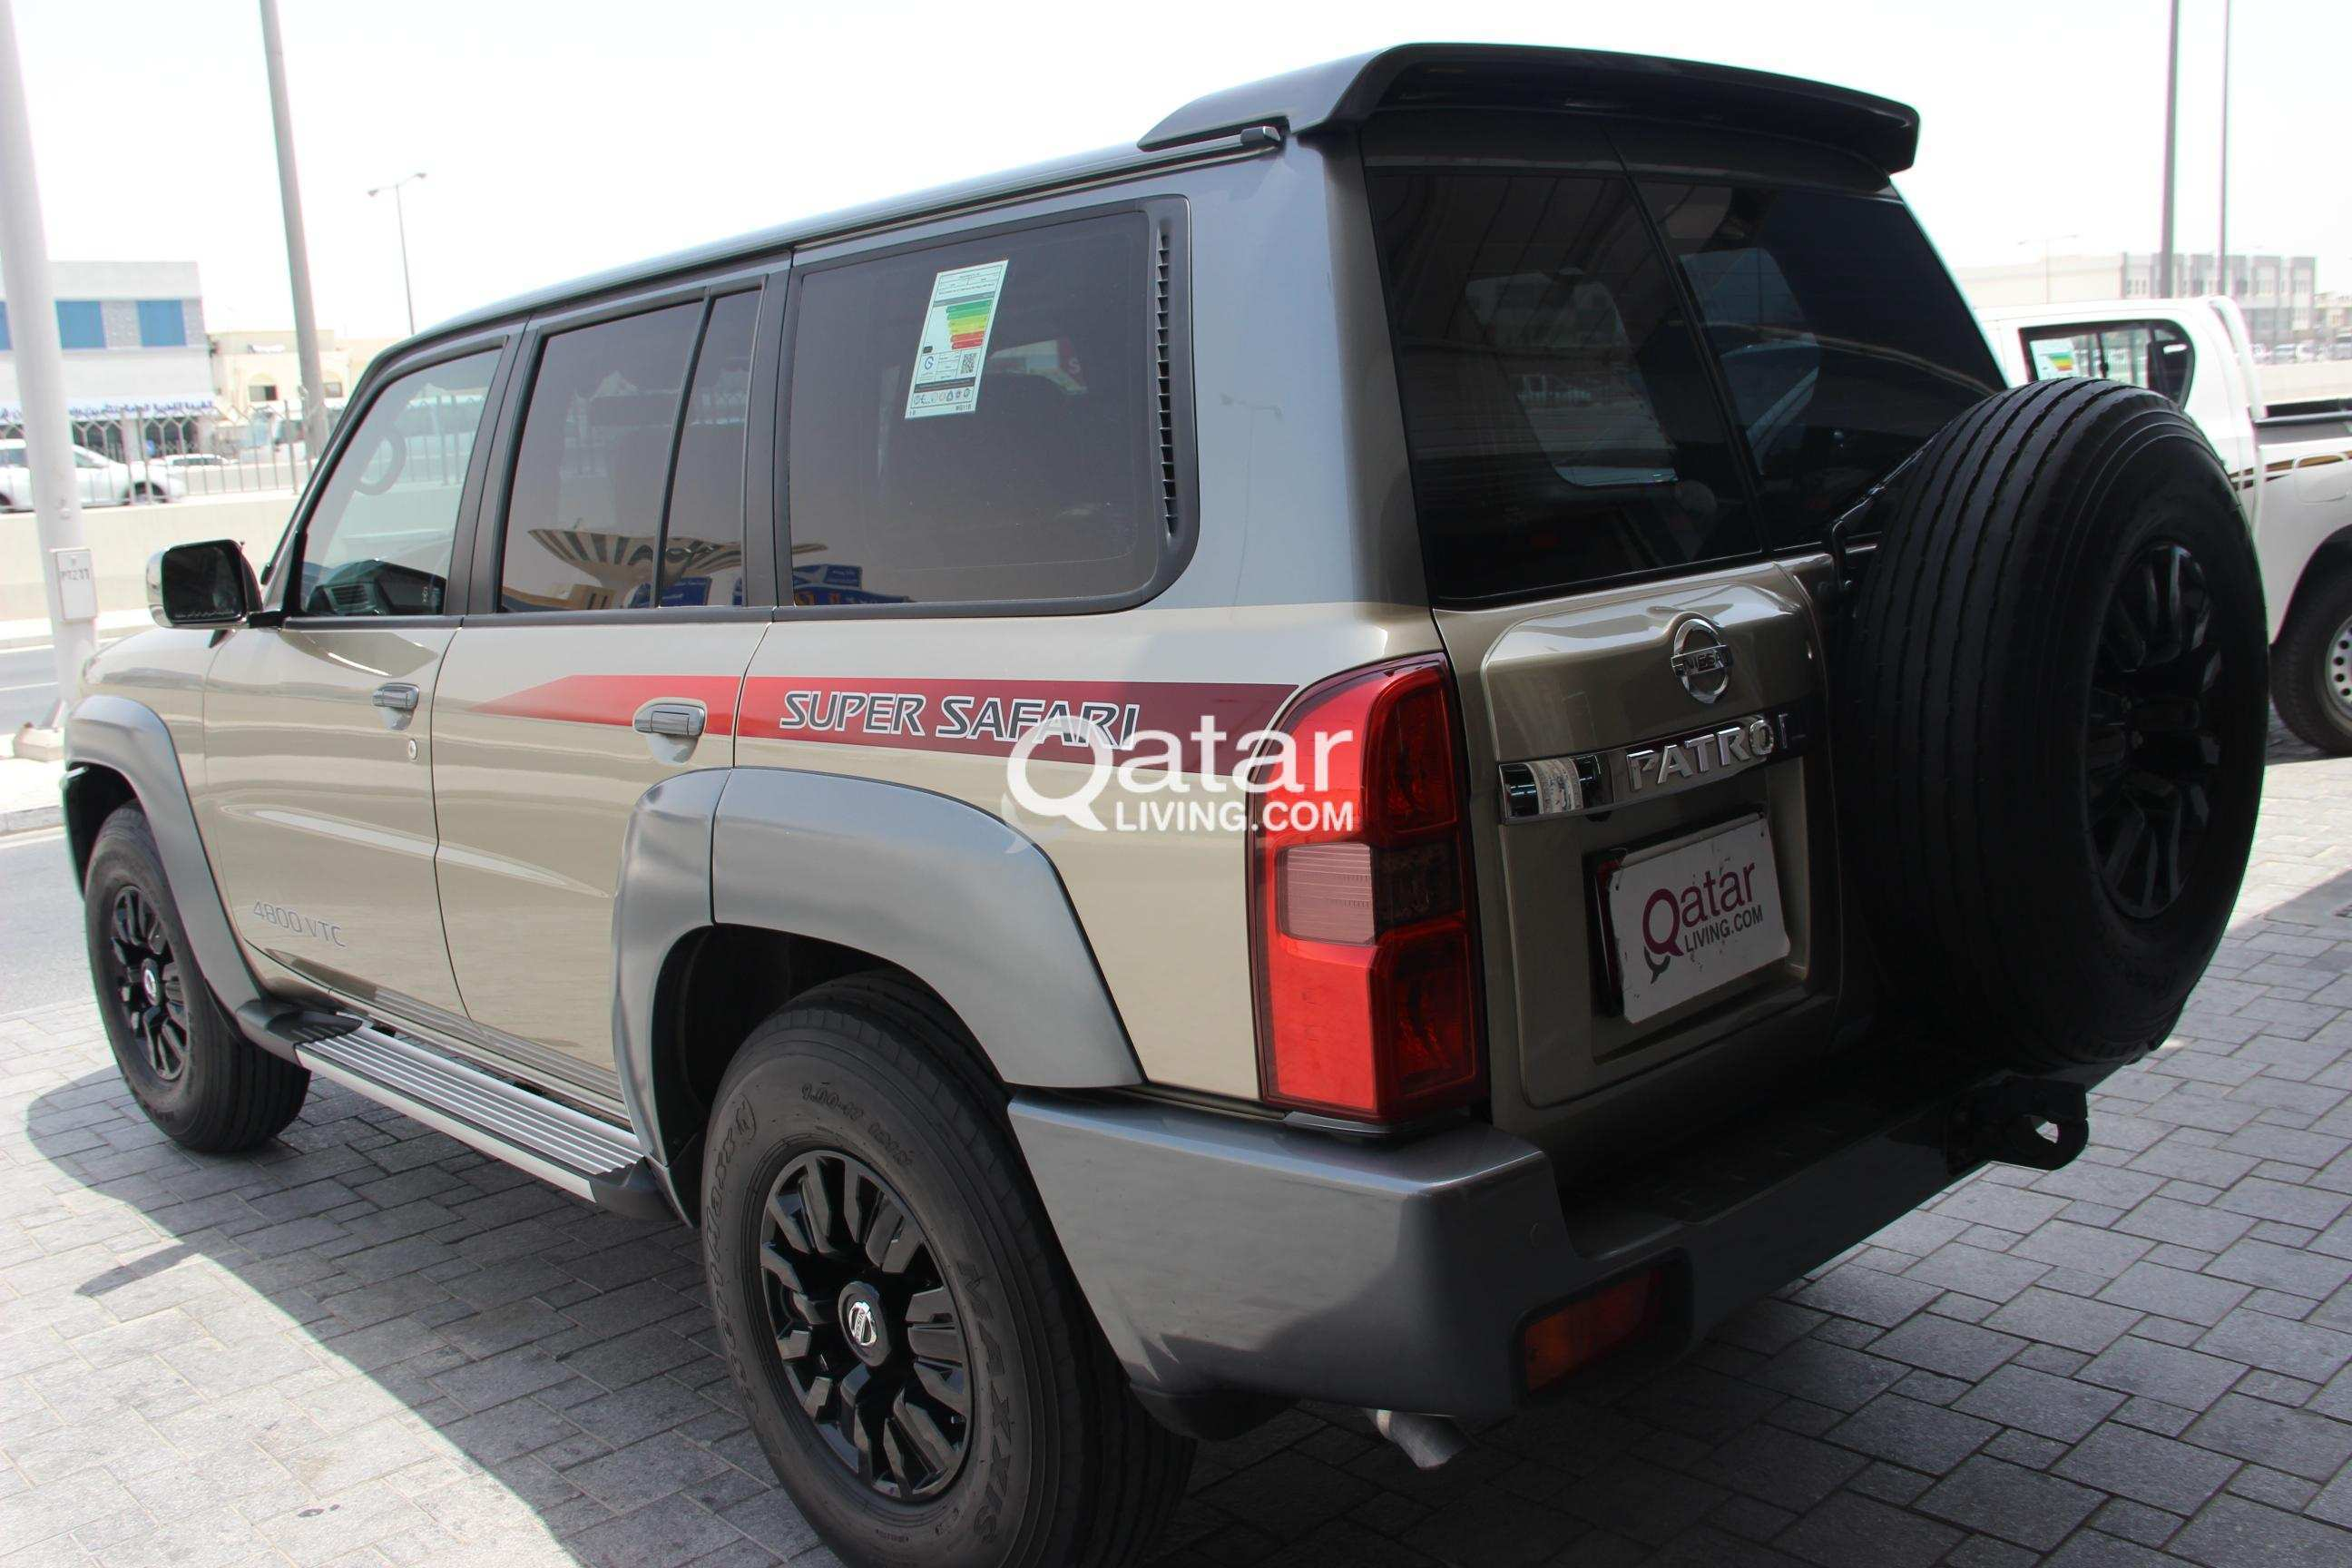 64 A Nissan Super Safari 2019 Photos